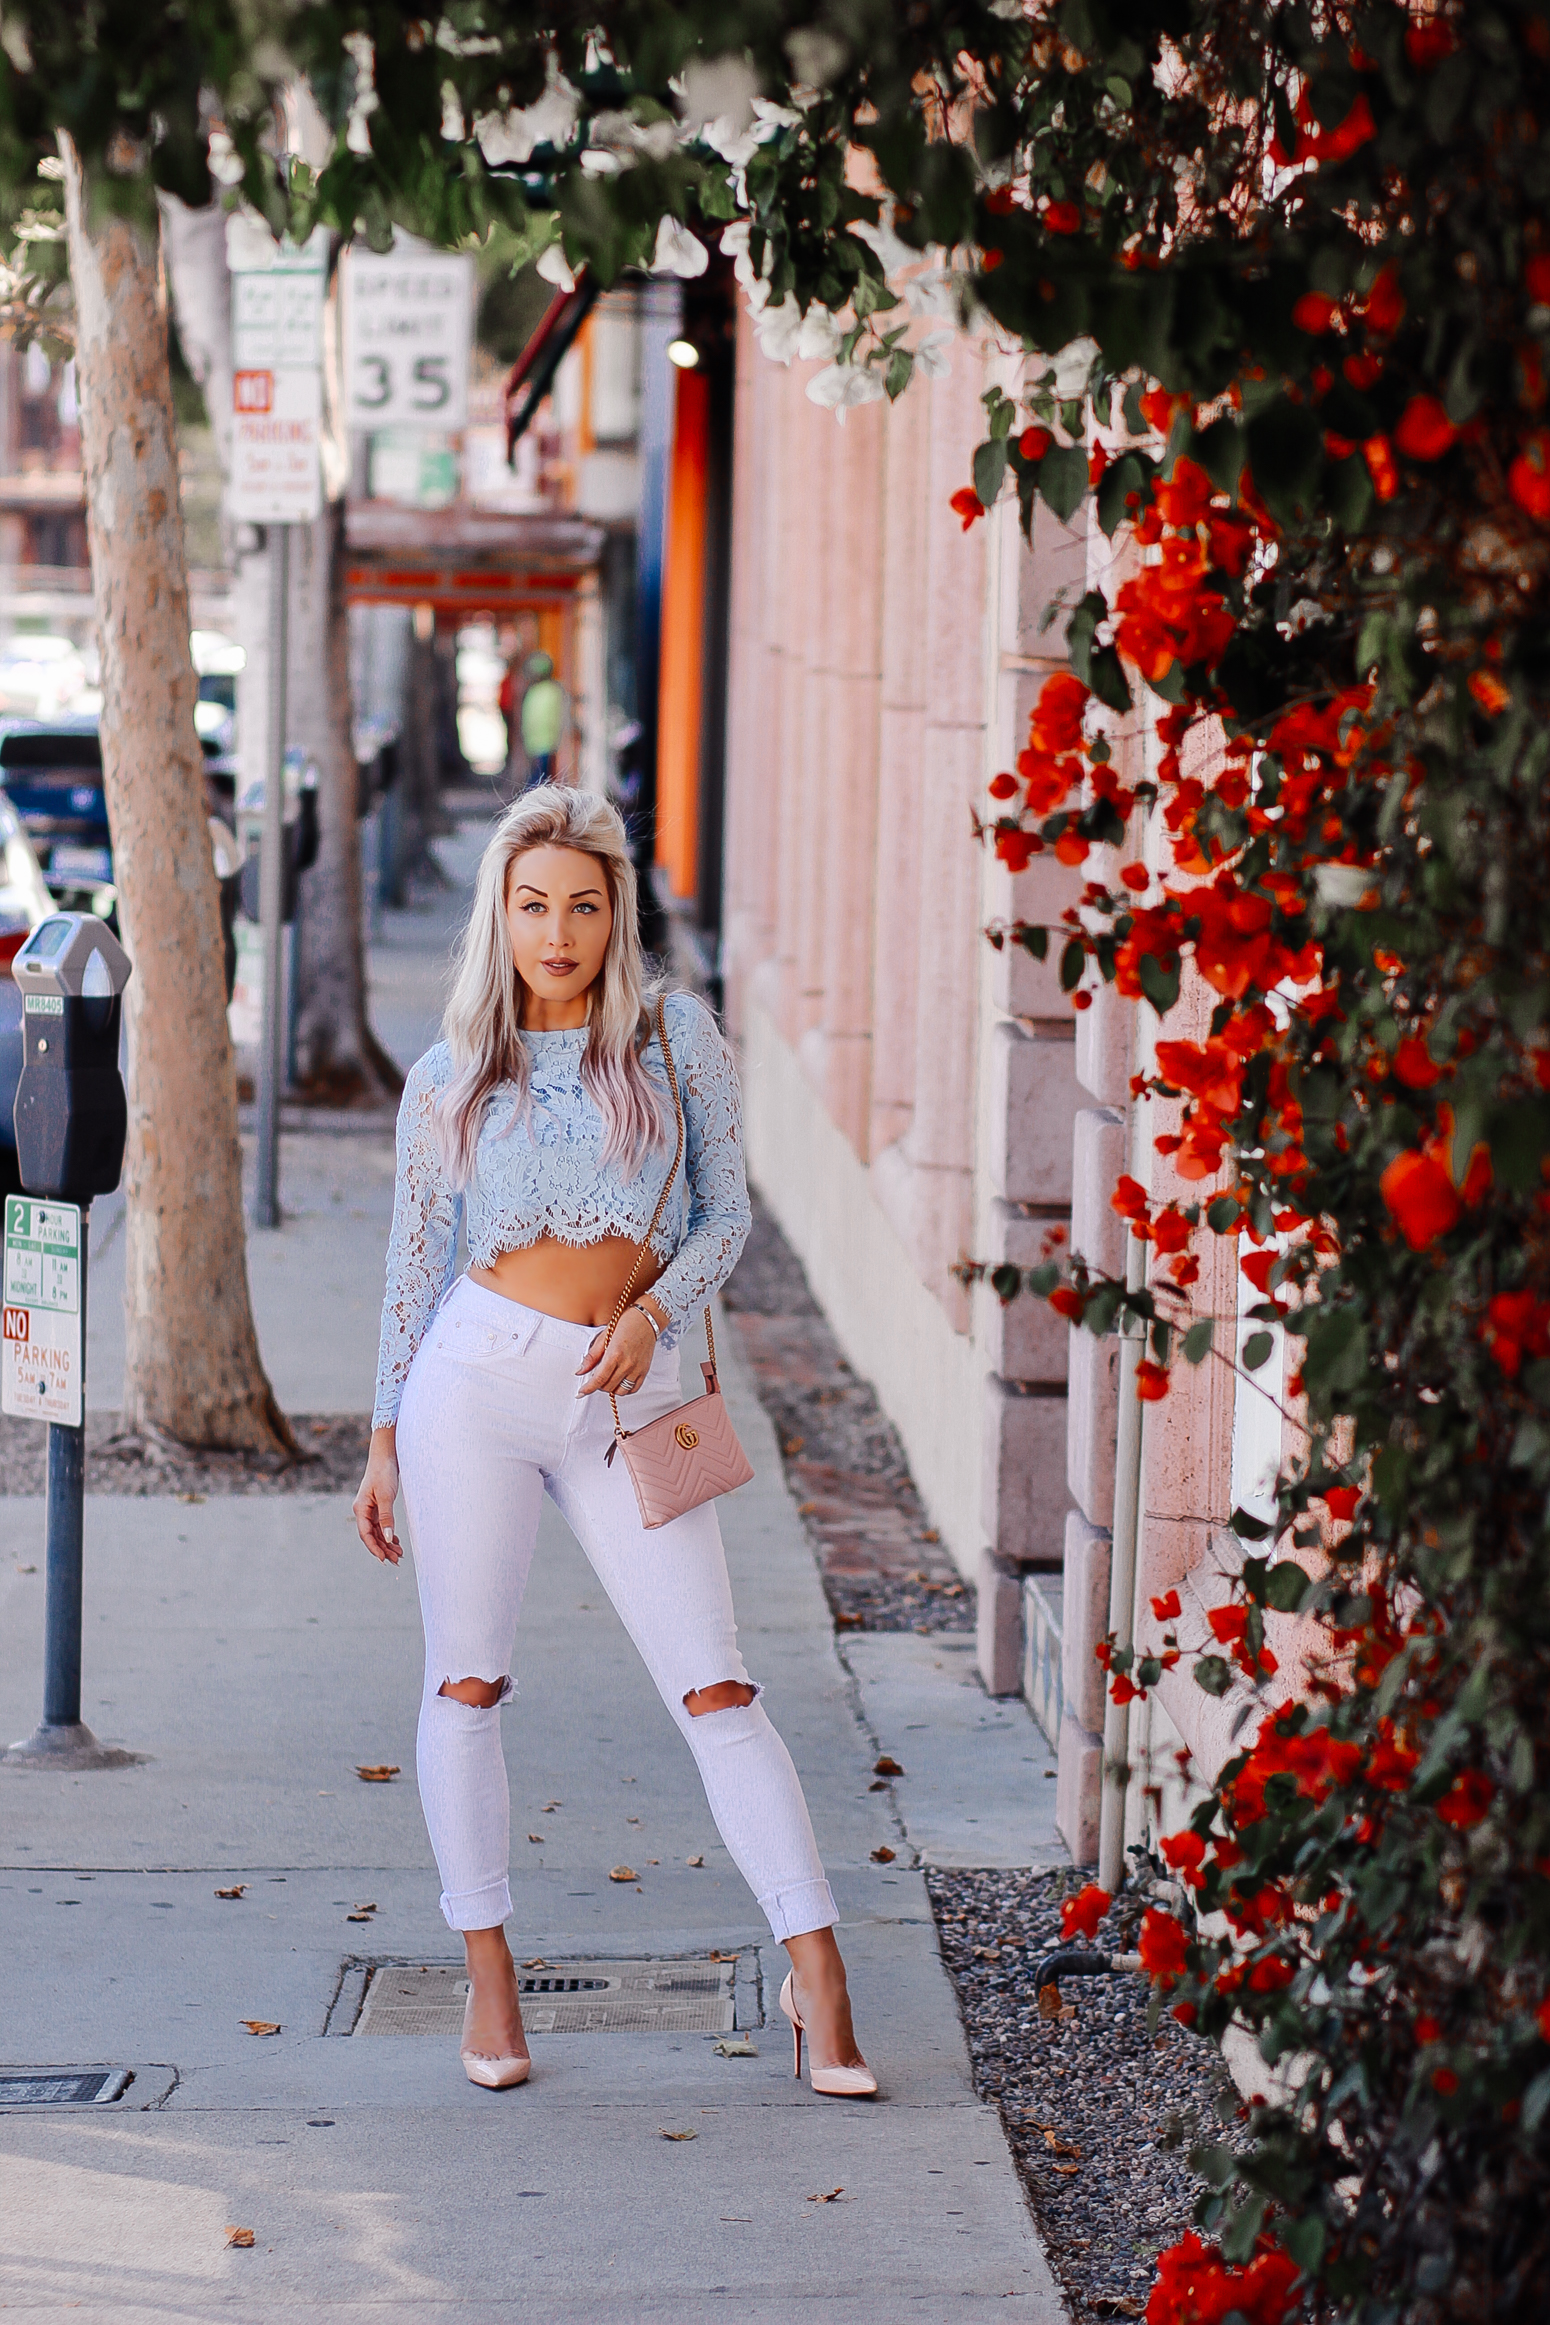 Blondie in the City | Pastel Blue Lace Crop Top, White Ripped Jeans, Pink Louboutin's, Pink Gucci Bag | LA Street Style | Fashion Bloggers